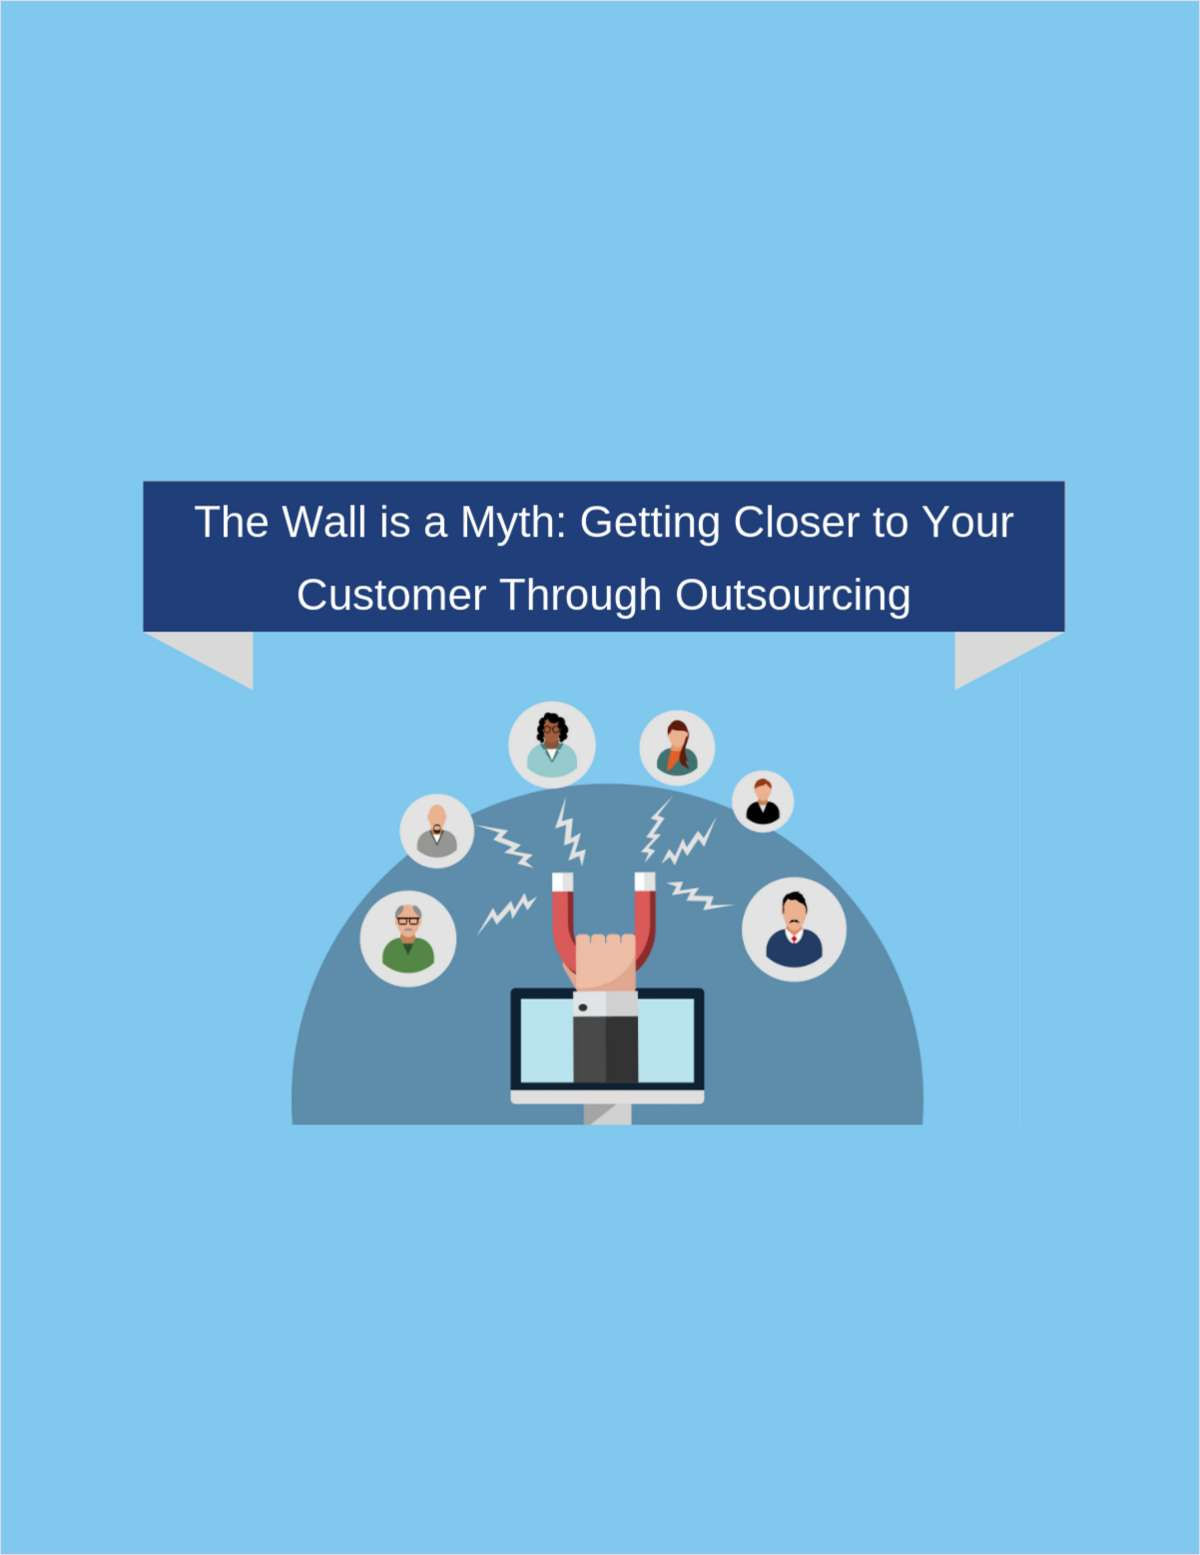 The Wall is a Myth: Getting Closer to Your Customer Through Outsourcing